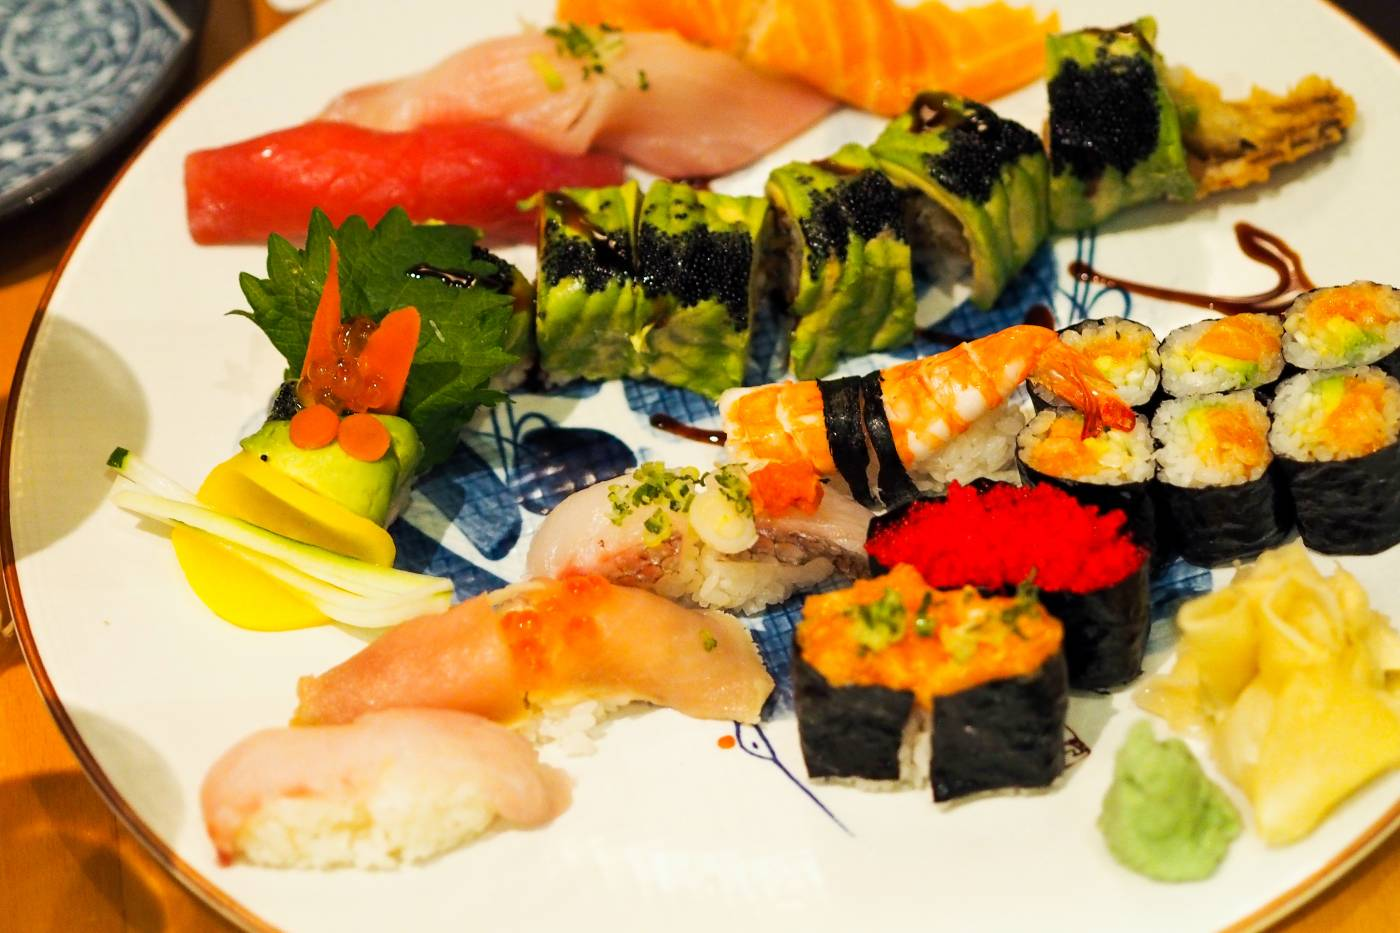 Sushi new york, japonica, best sushi in new york, where to eat in new york, new york